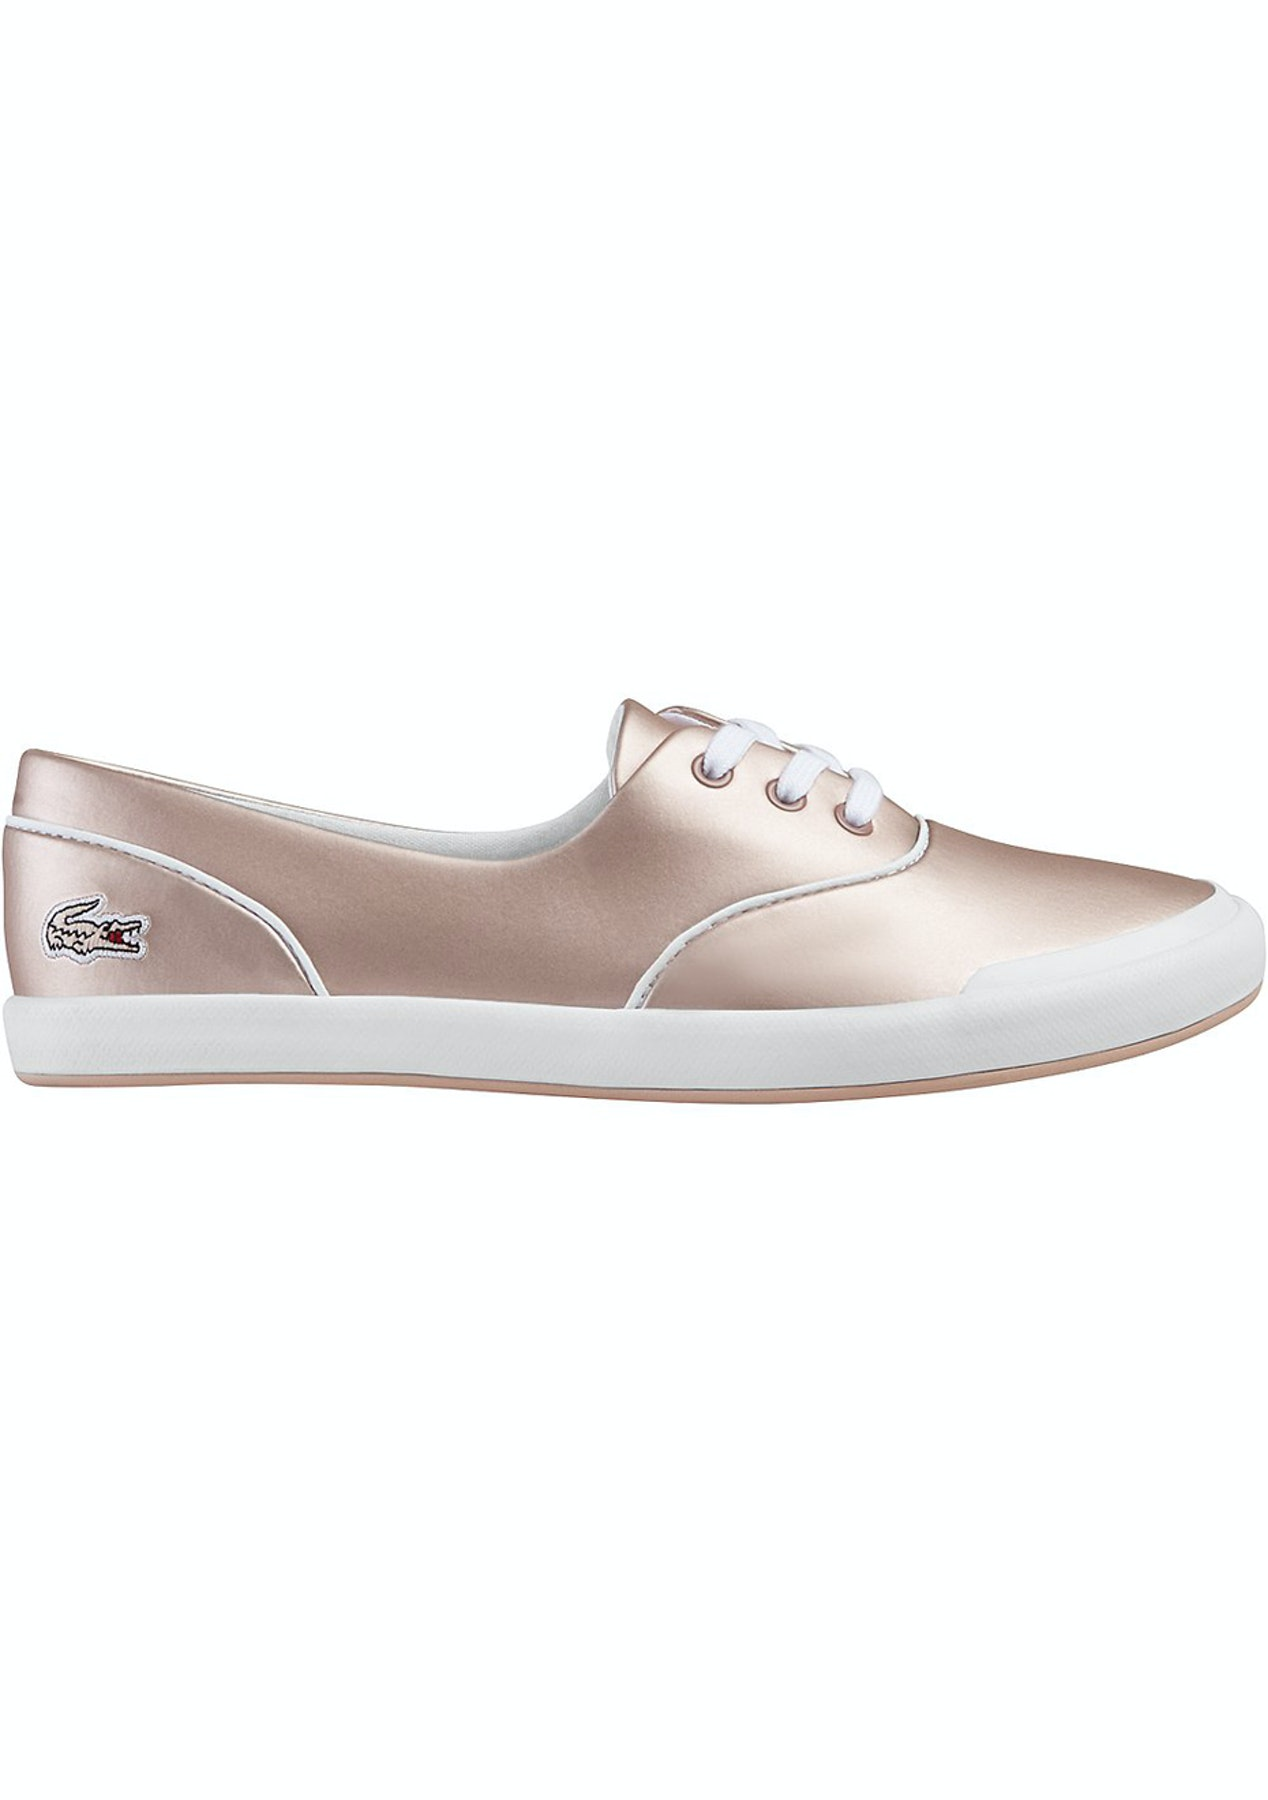 79fc7789f28e Lacoste - Womens Lancelle 3 Eye 117 1 Light Pink - Shoe Reductions - Onceit